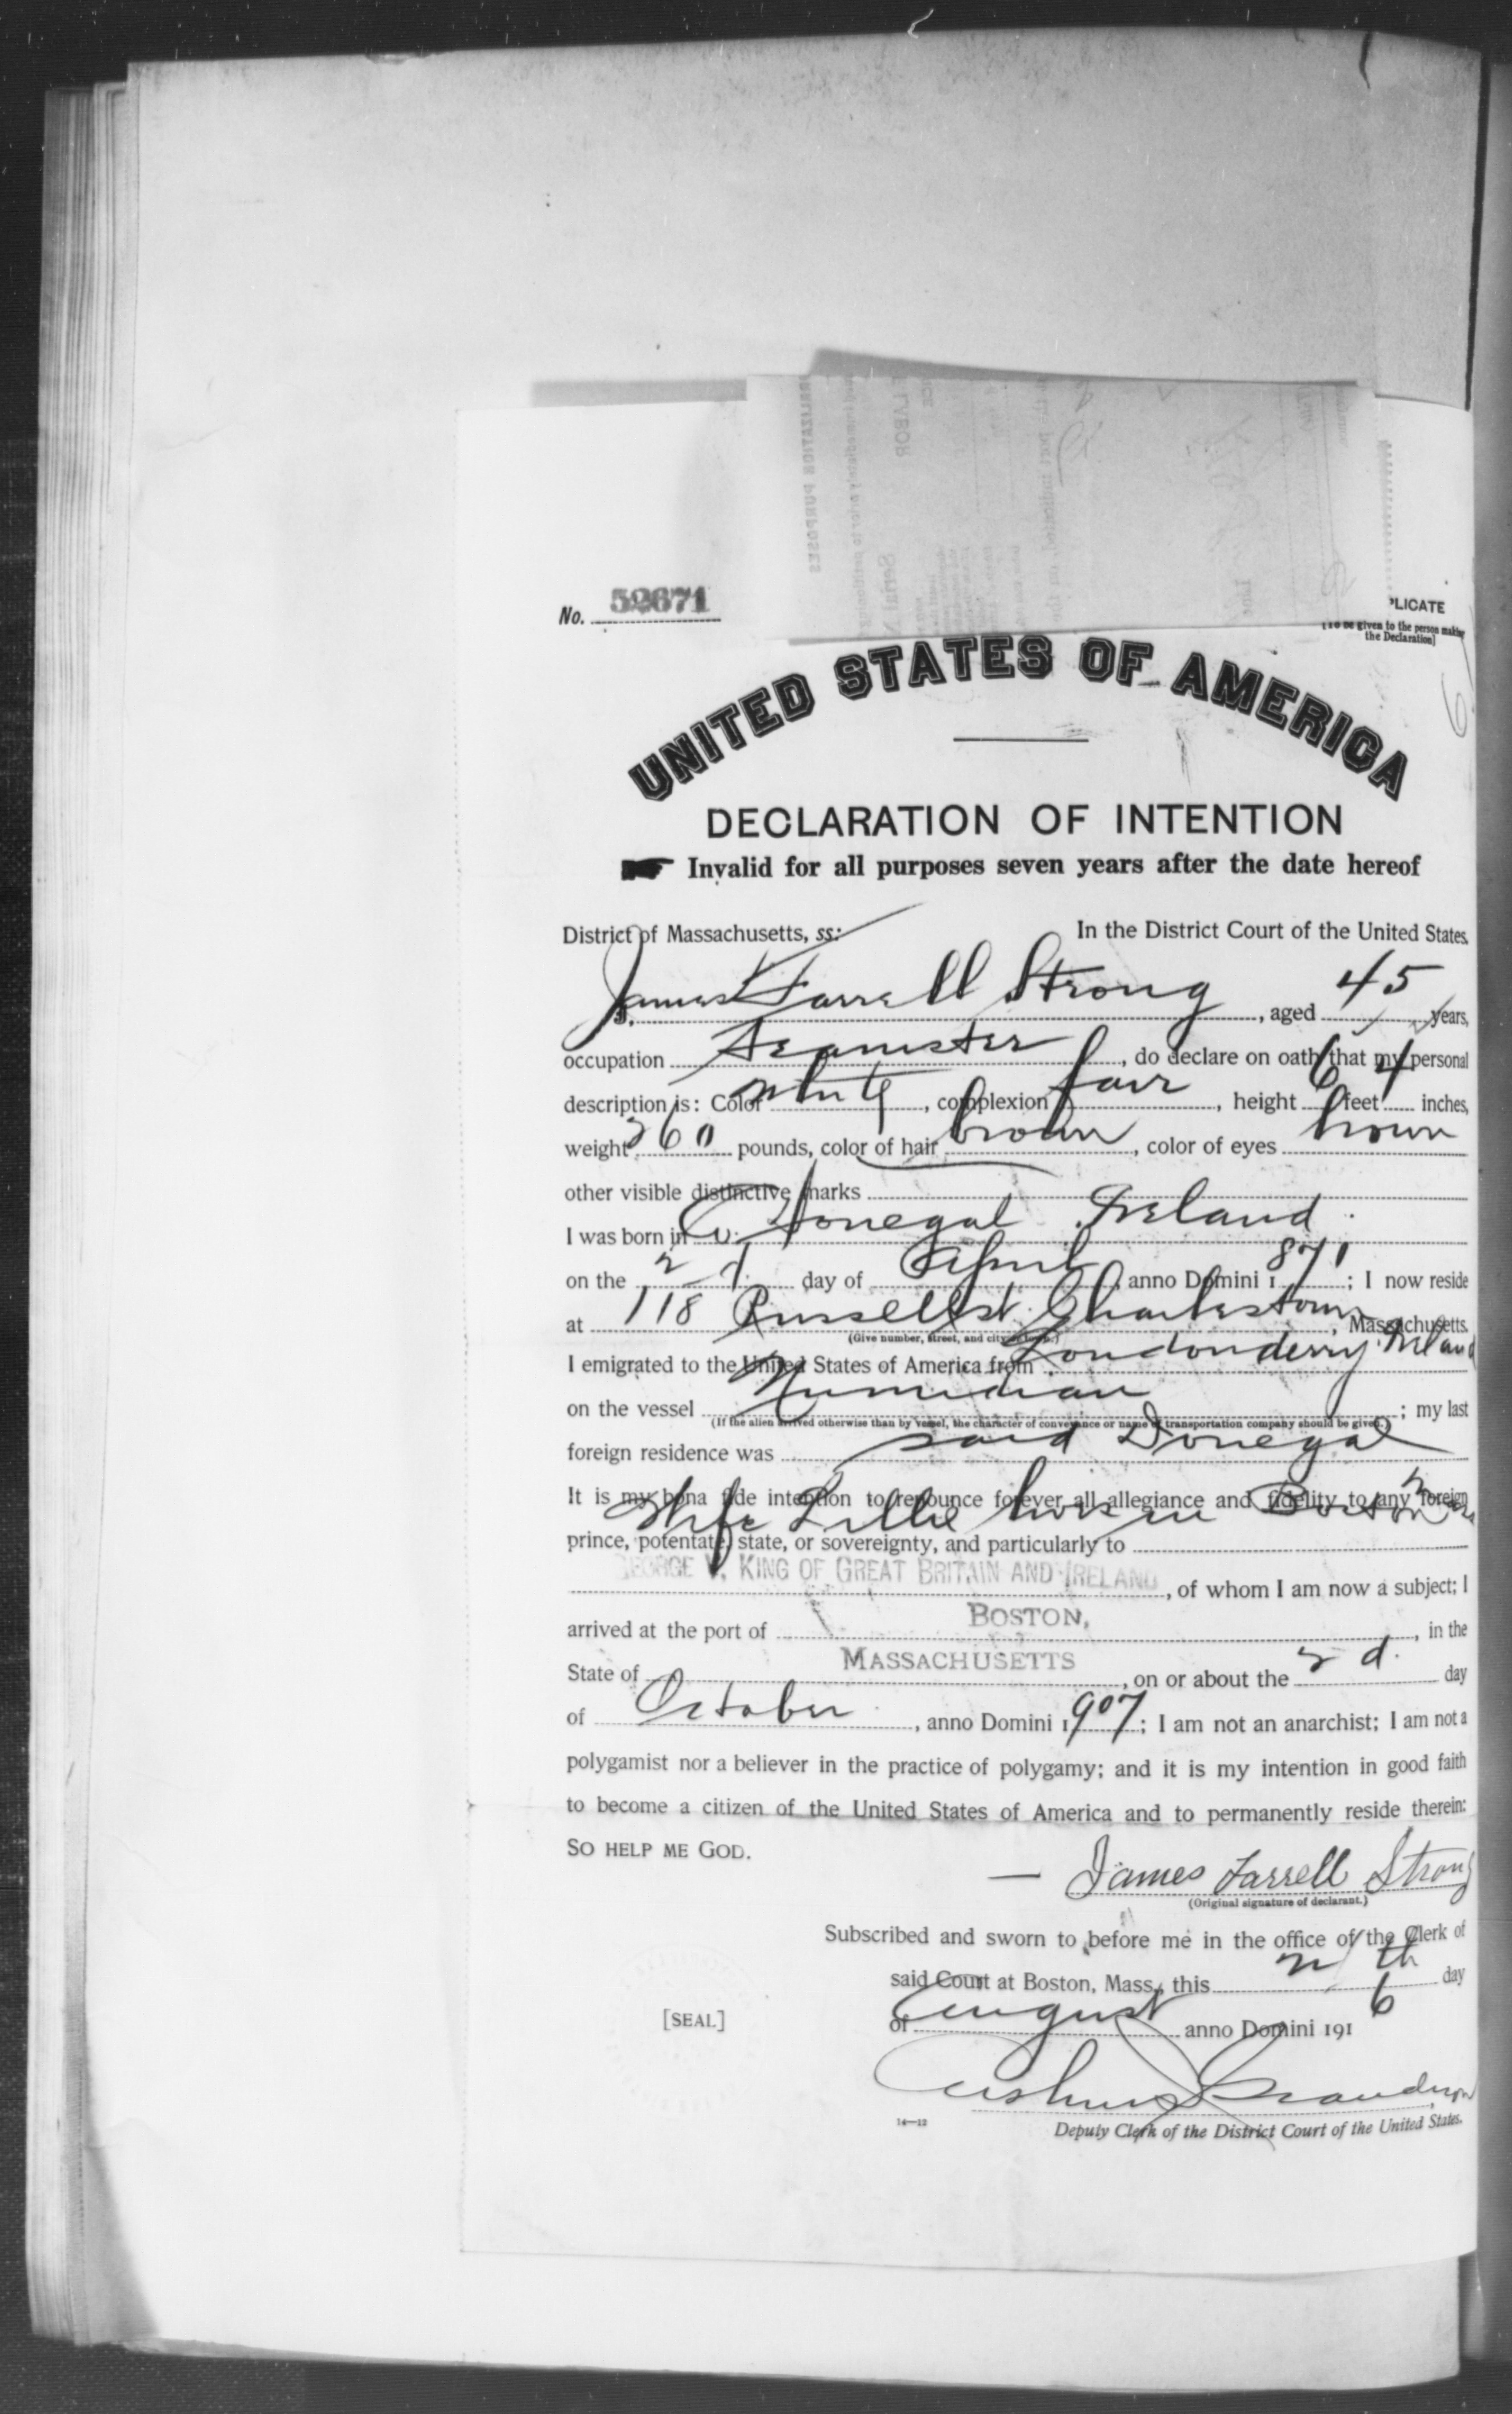 Petition for Naturalization of James Farrell Strong